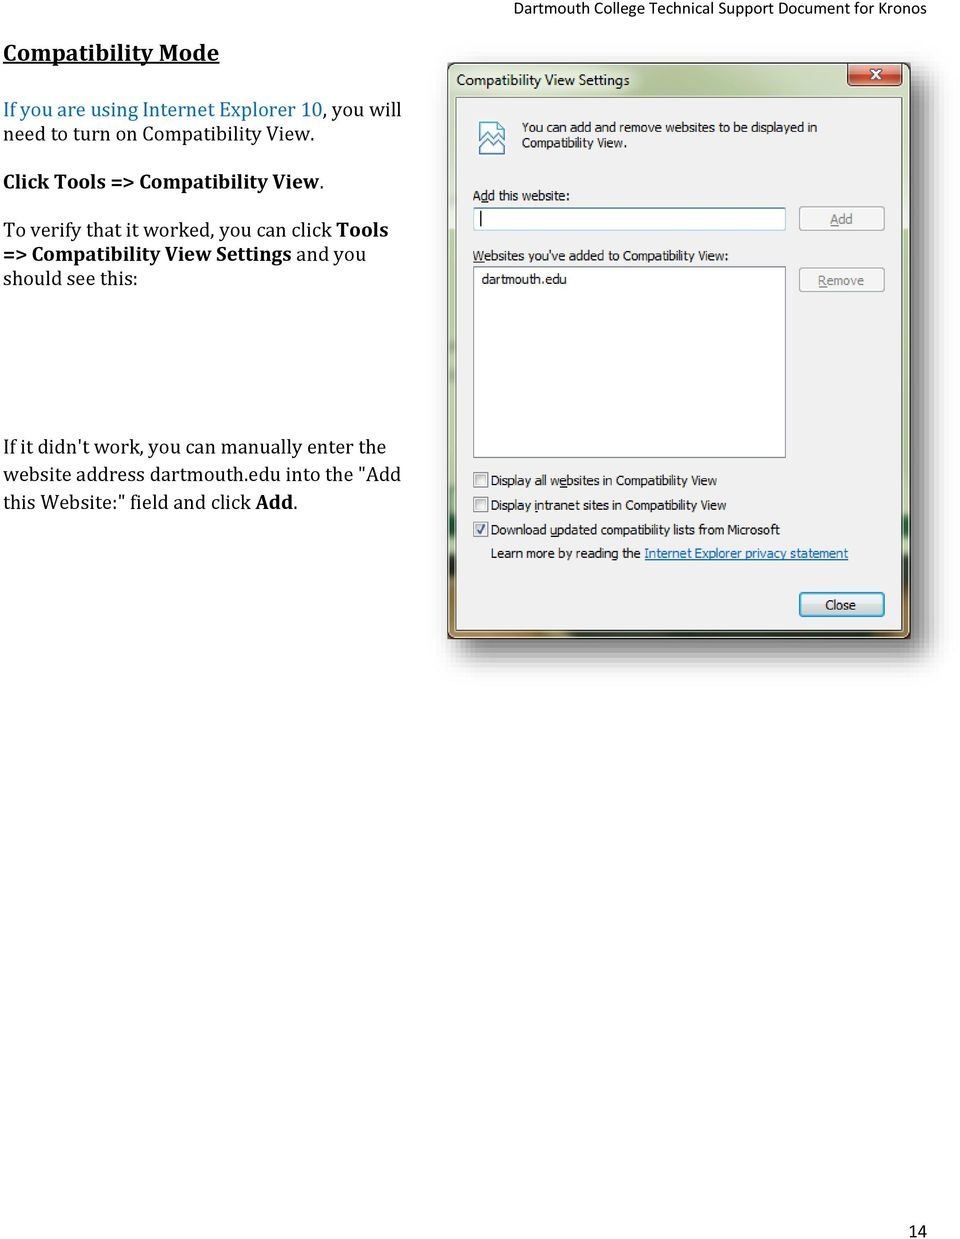 To verify that it worked, you can click Tools => Compatibility View Settings and you should